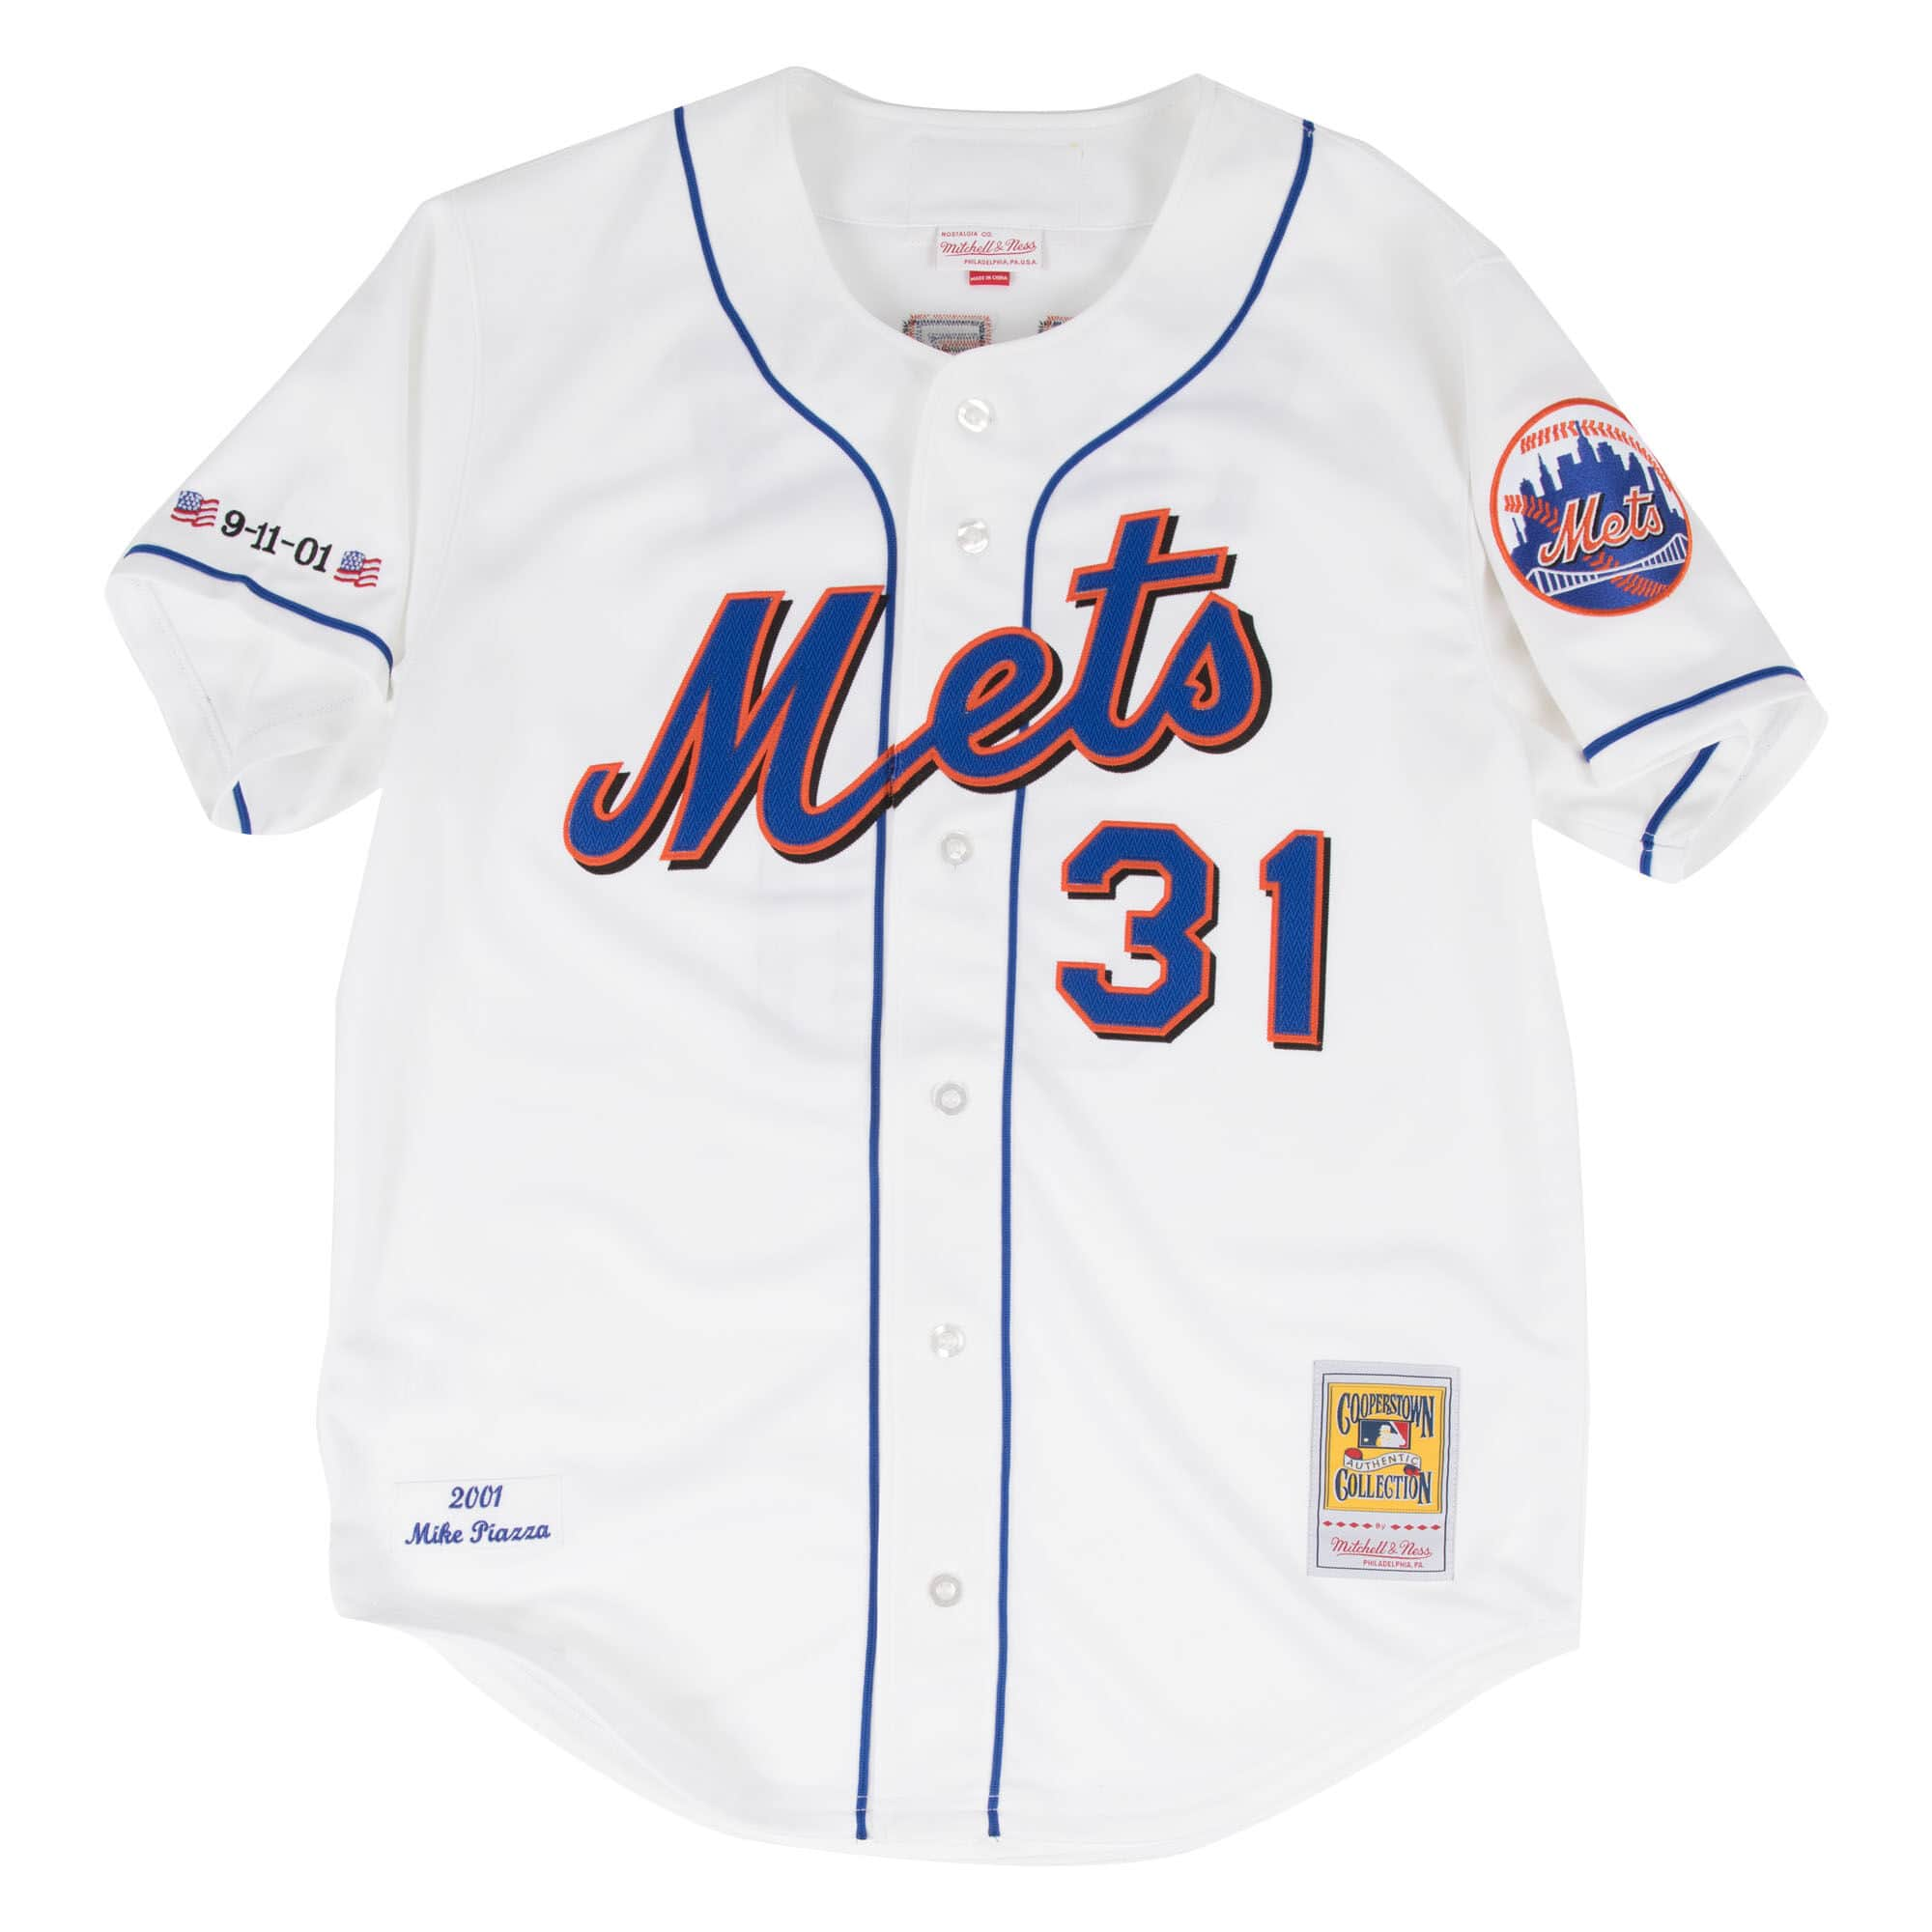 Mike Piazza Authentic Jersey 2001 New York Mets